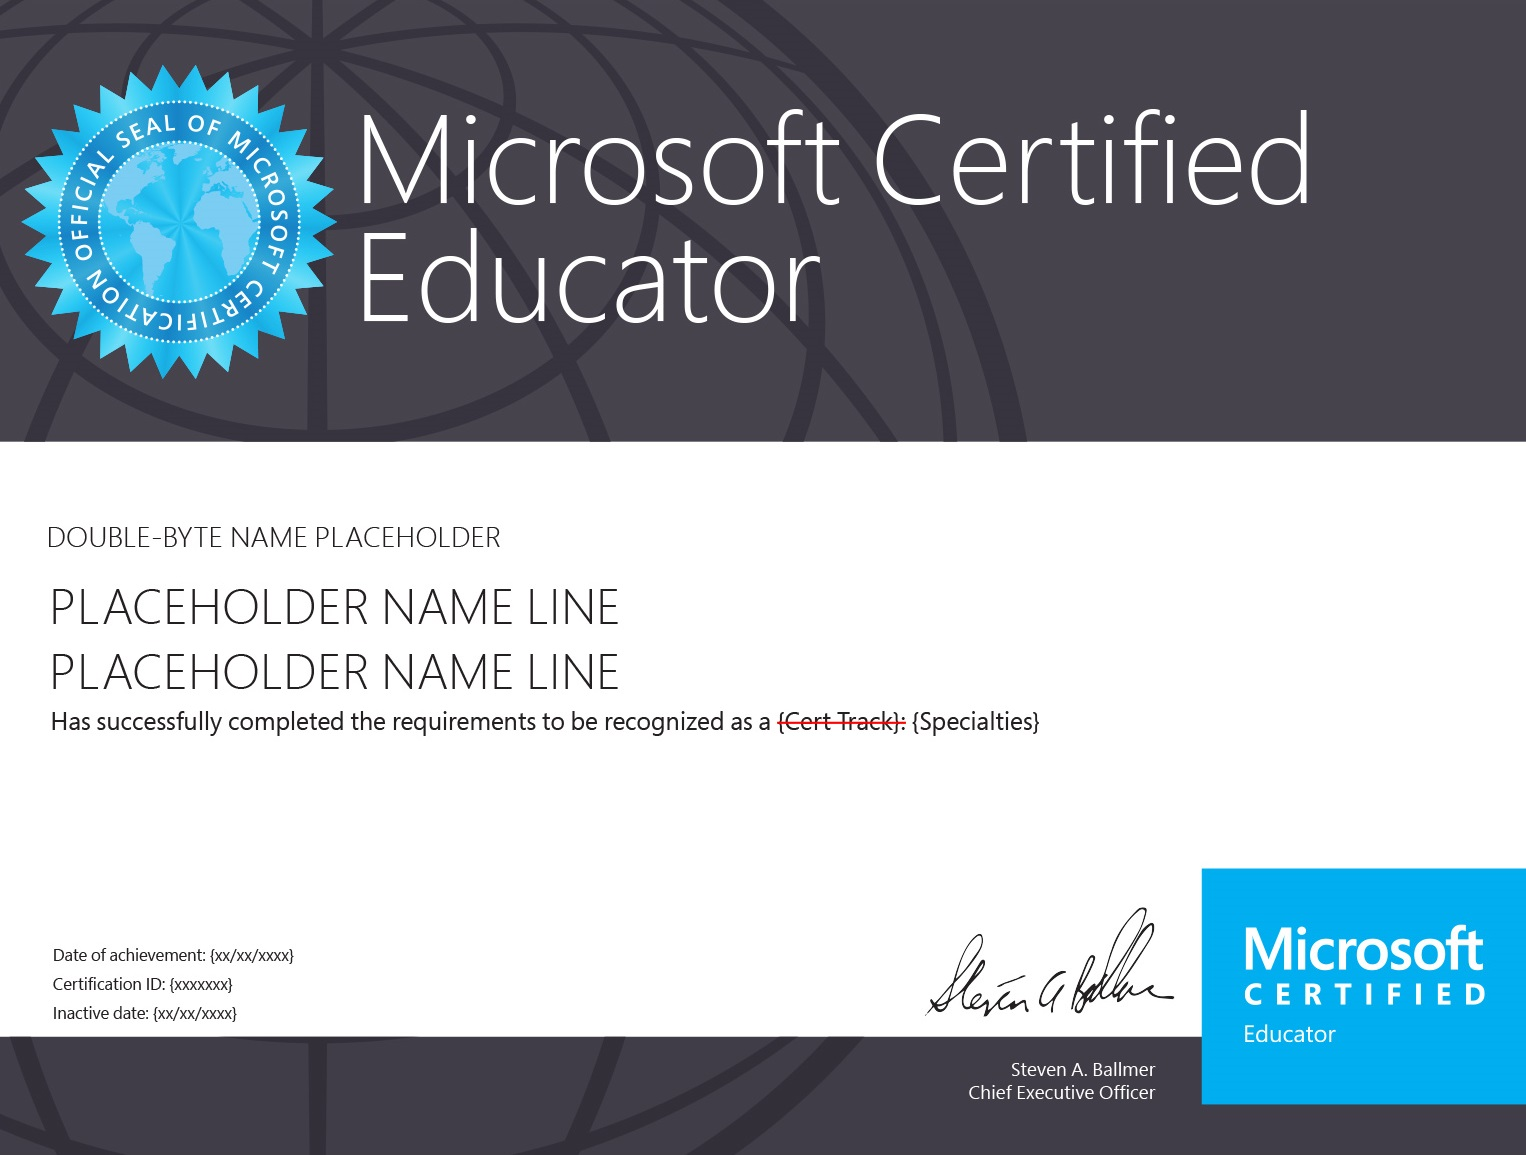 Microsoft Certified Educator (MCE)